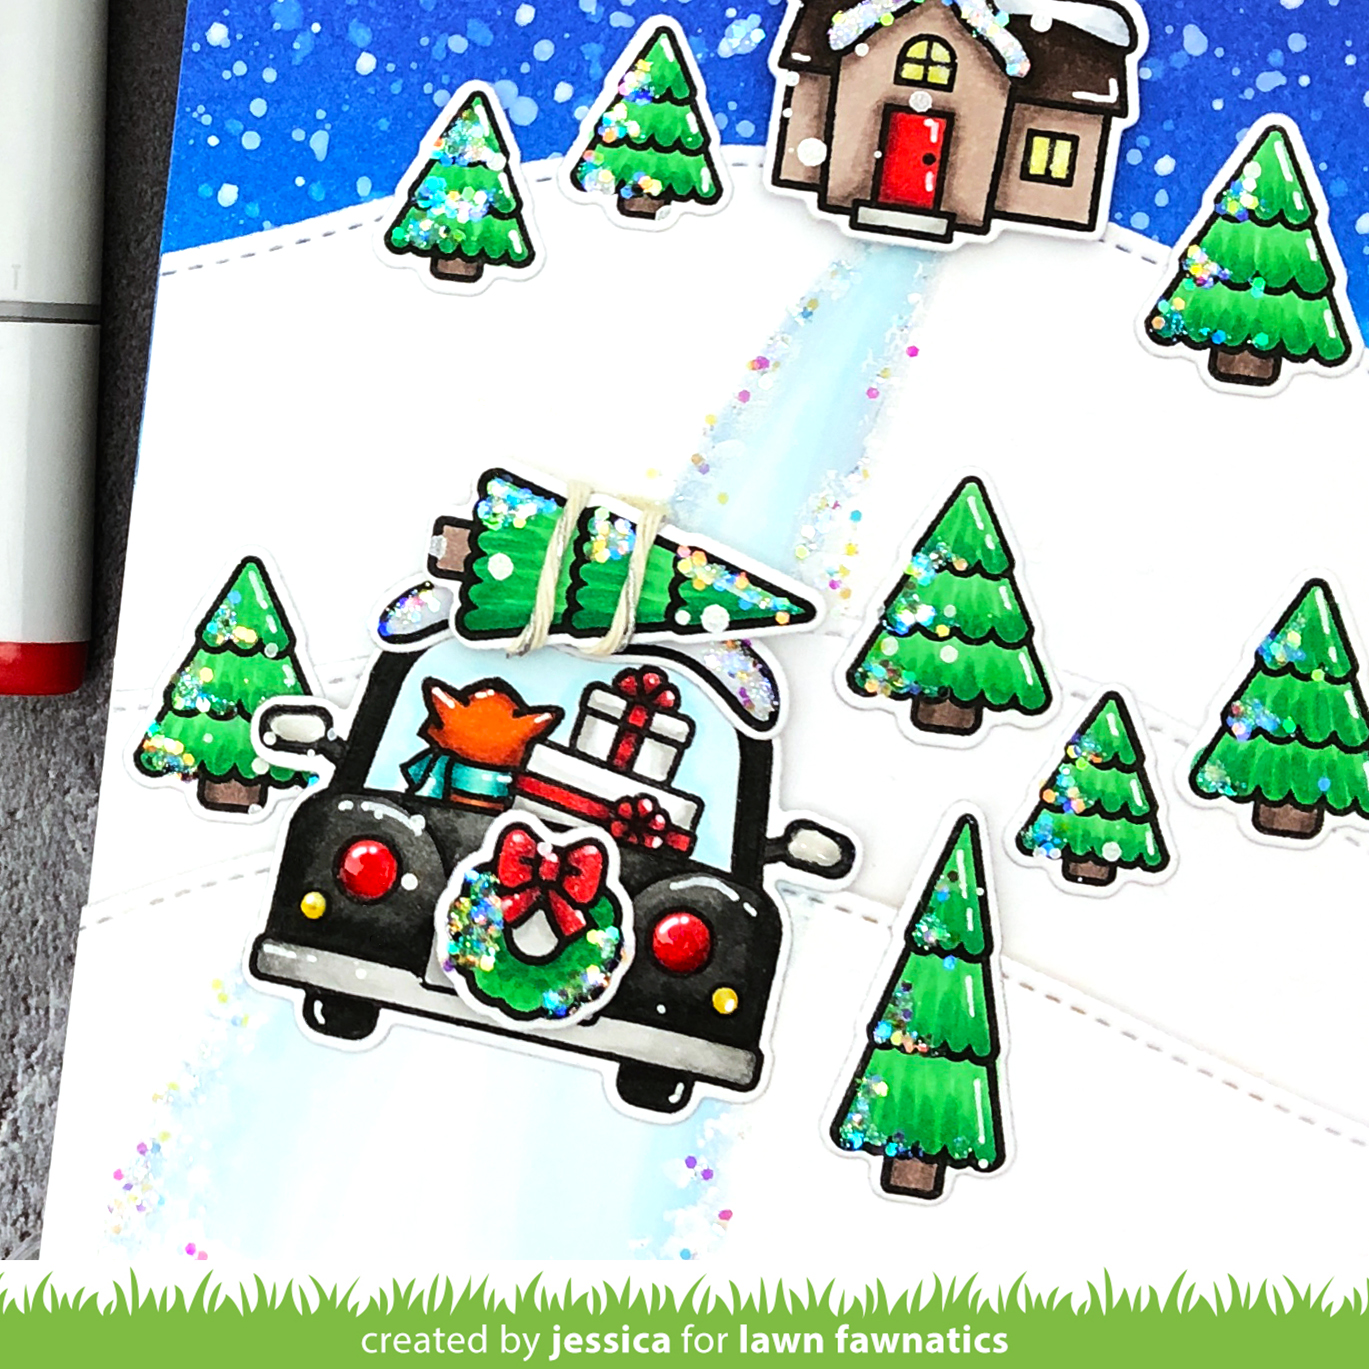 Christmas Scene Card with Car Critters by Jessica Frost-Ballas for Lawn Fawn